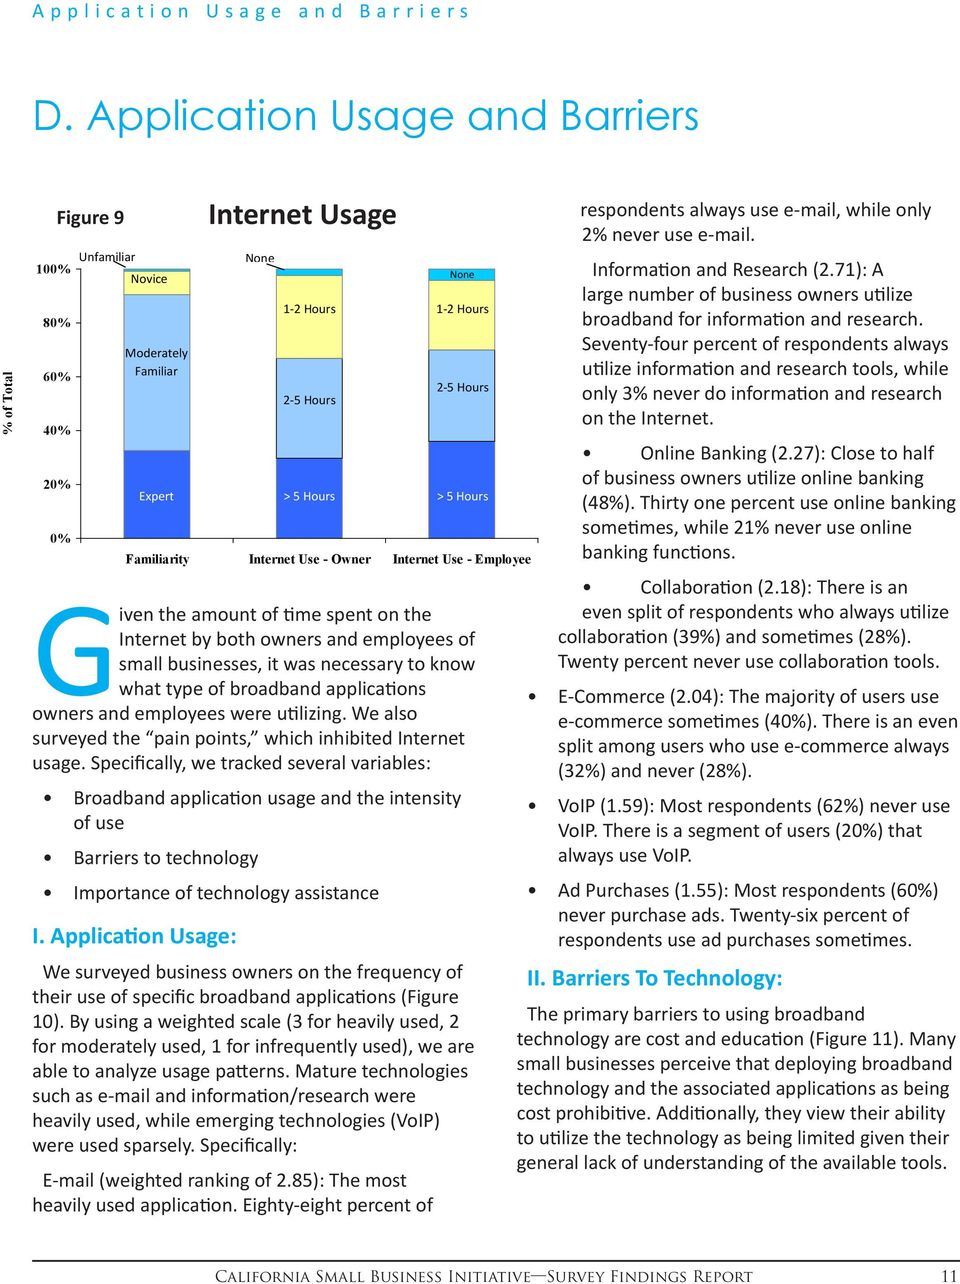 small businesses, it was necessary to know what type of broadband applications owners and employees were utilizing. We also surveyed the pain points, which inhibited Internet usage.